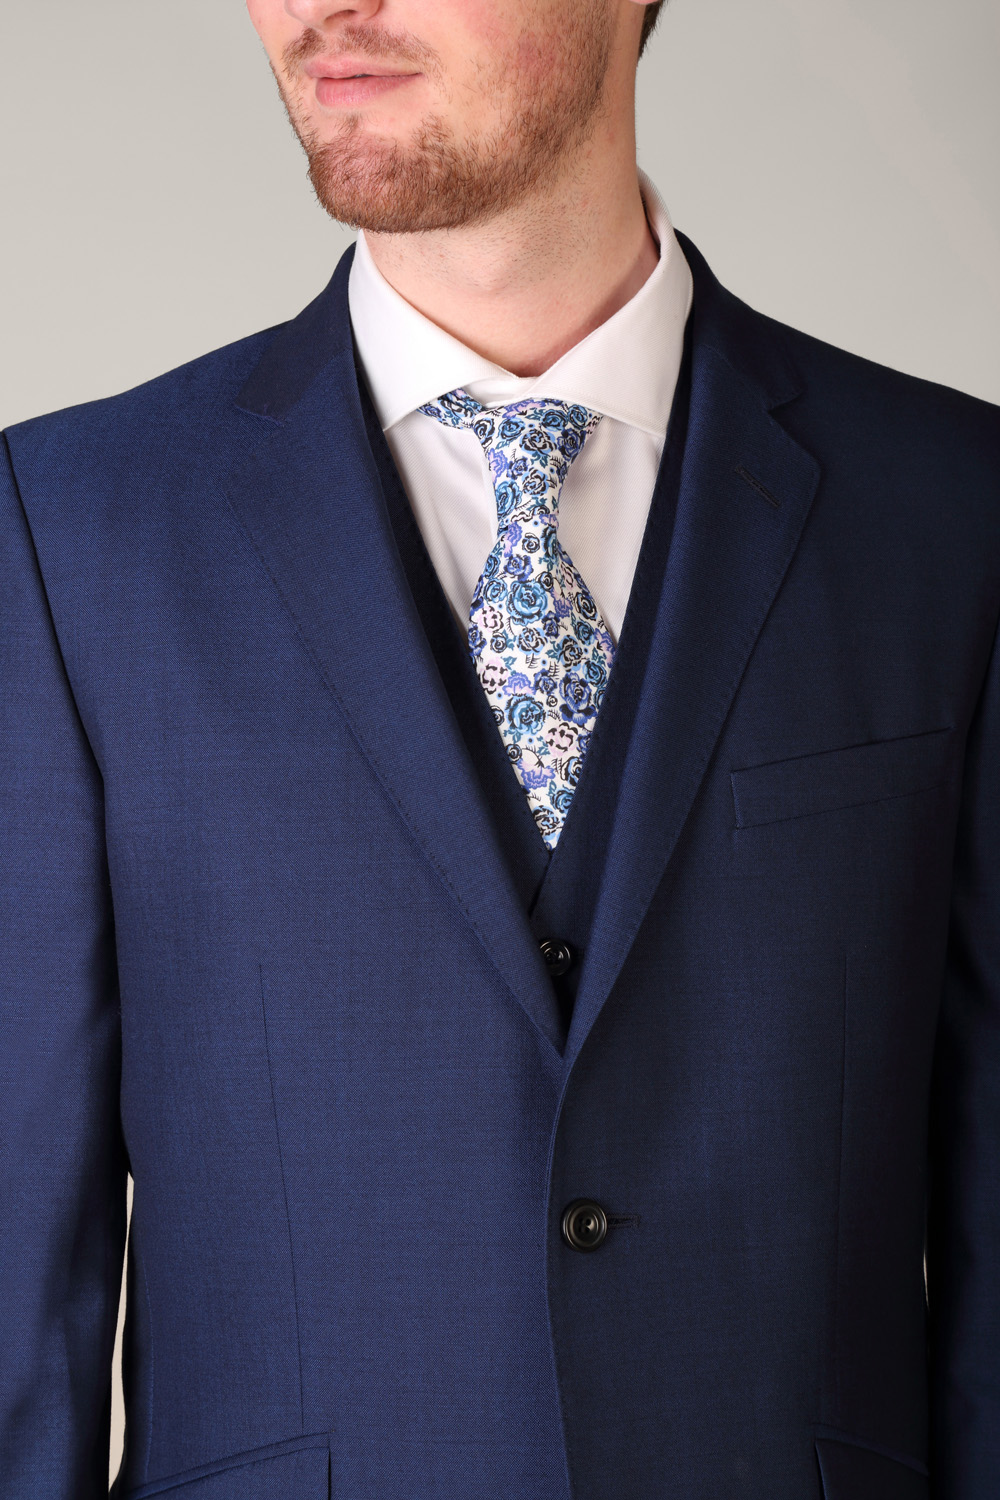 021dde7ead48c9 Magee Dillon Royal Blue 3 Piece Suit - Tom Murphy's Formal and Menswear